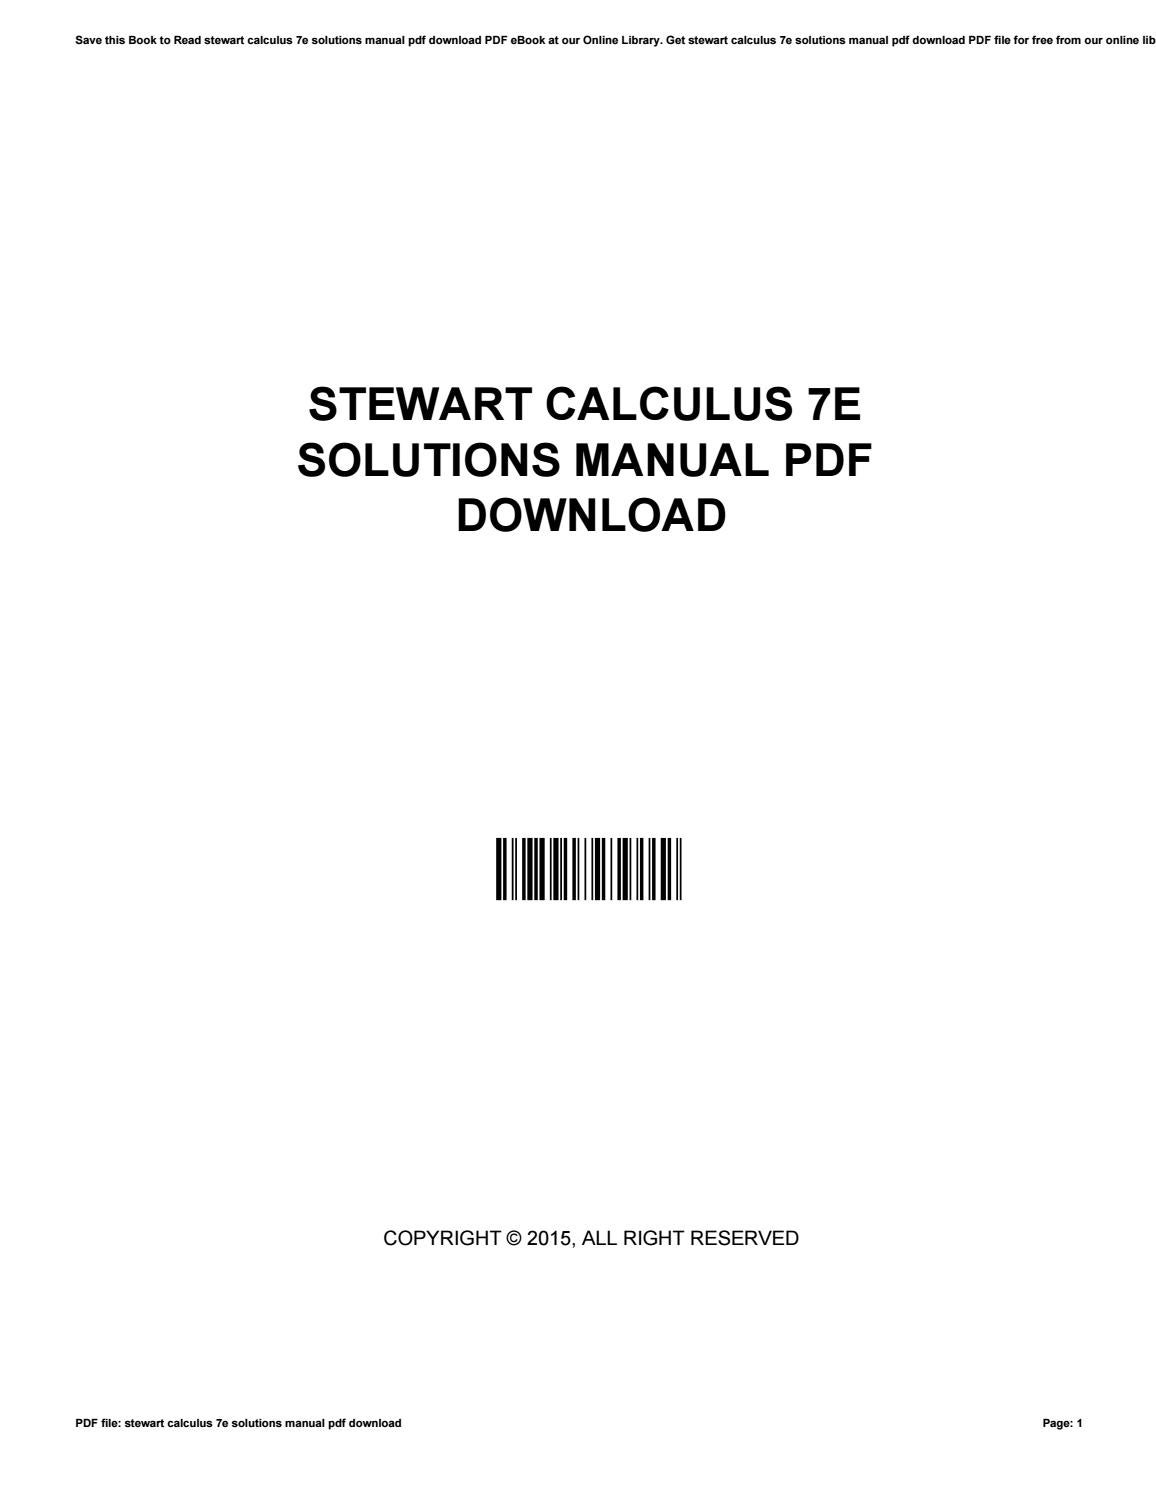 Stewart calculus 7e solutions manual pdf download by morriesworld5682 -  issuu